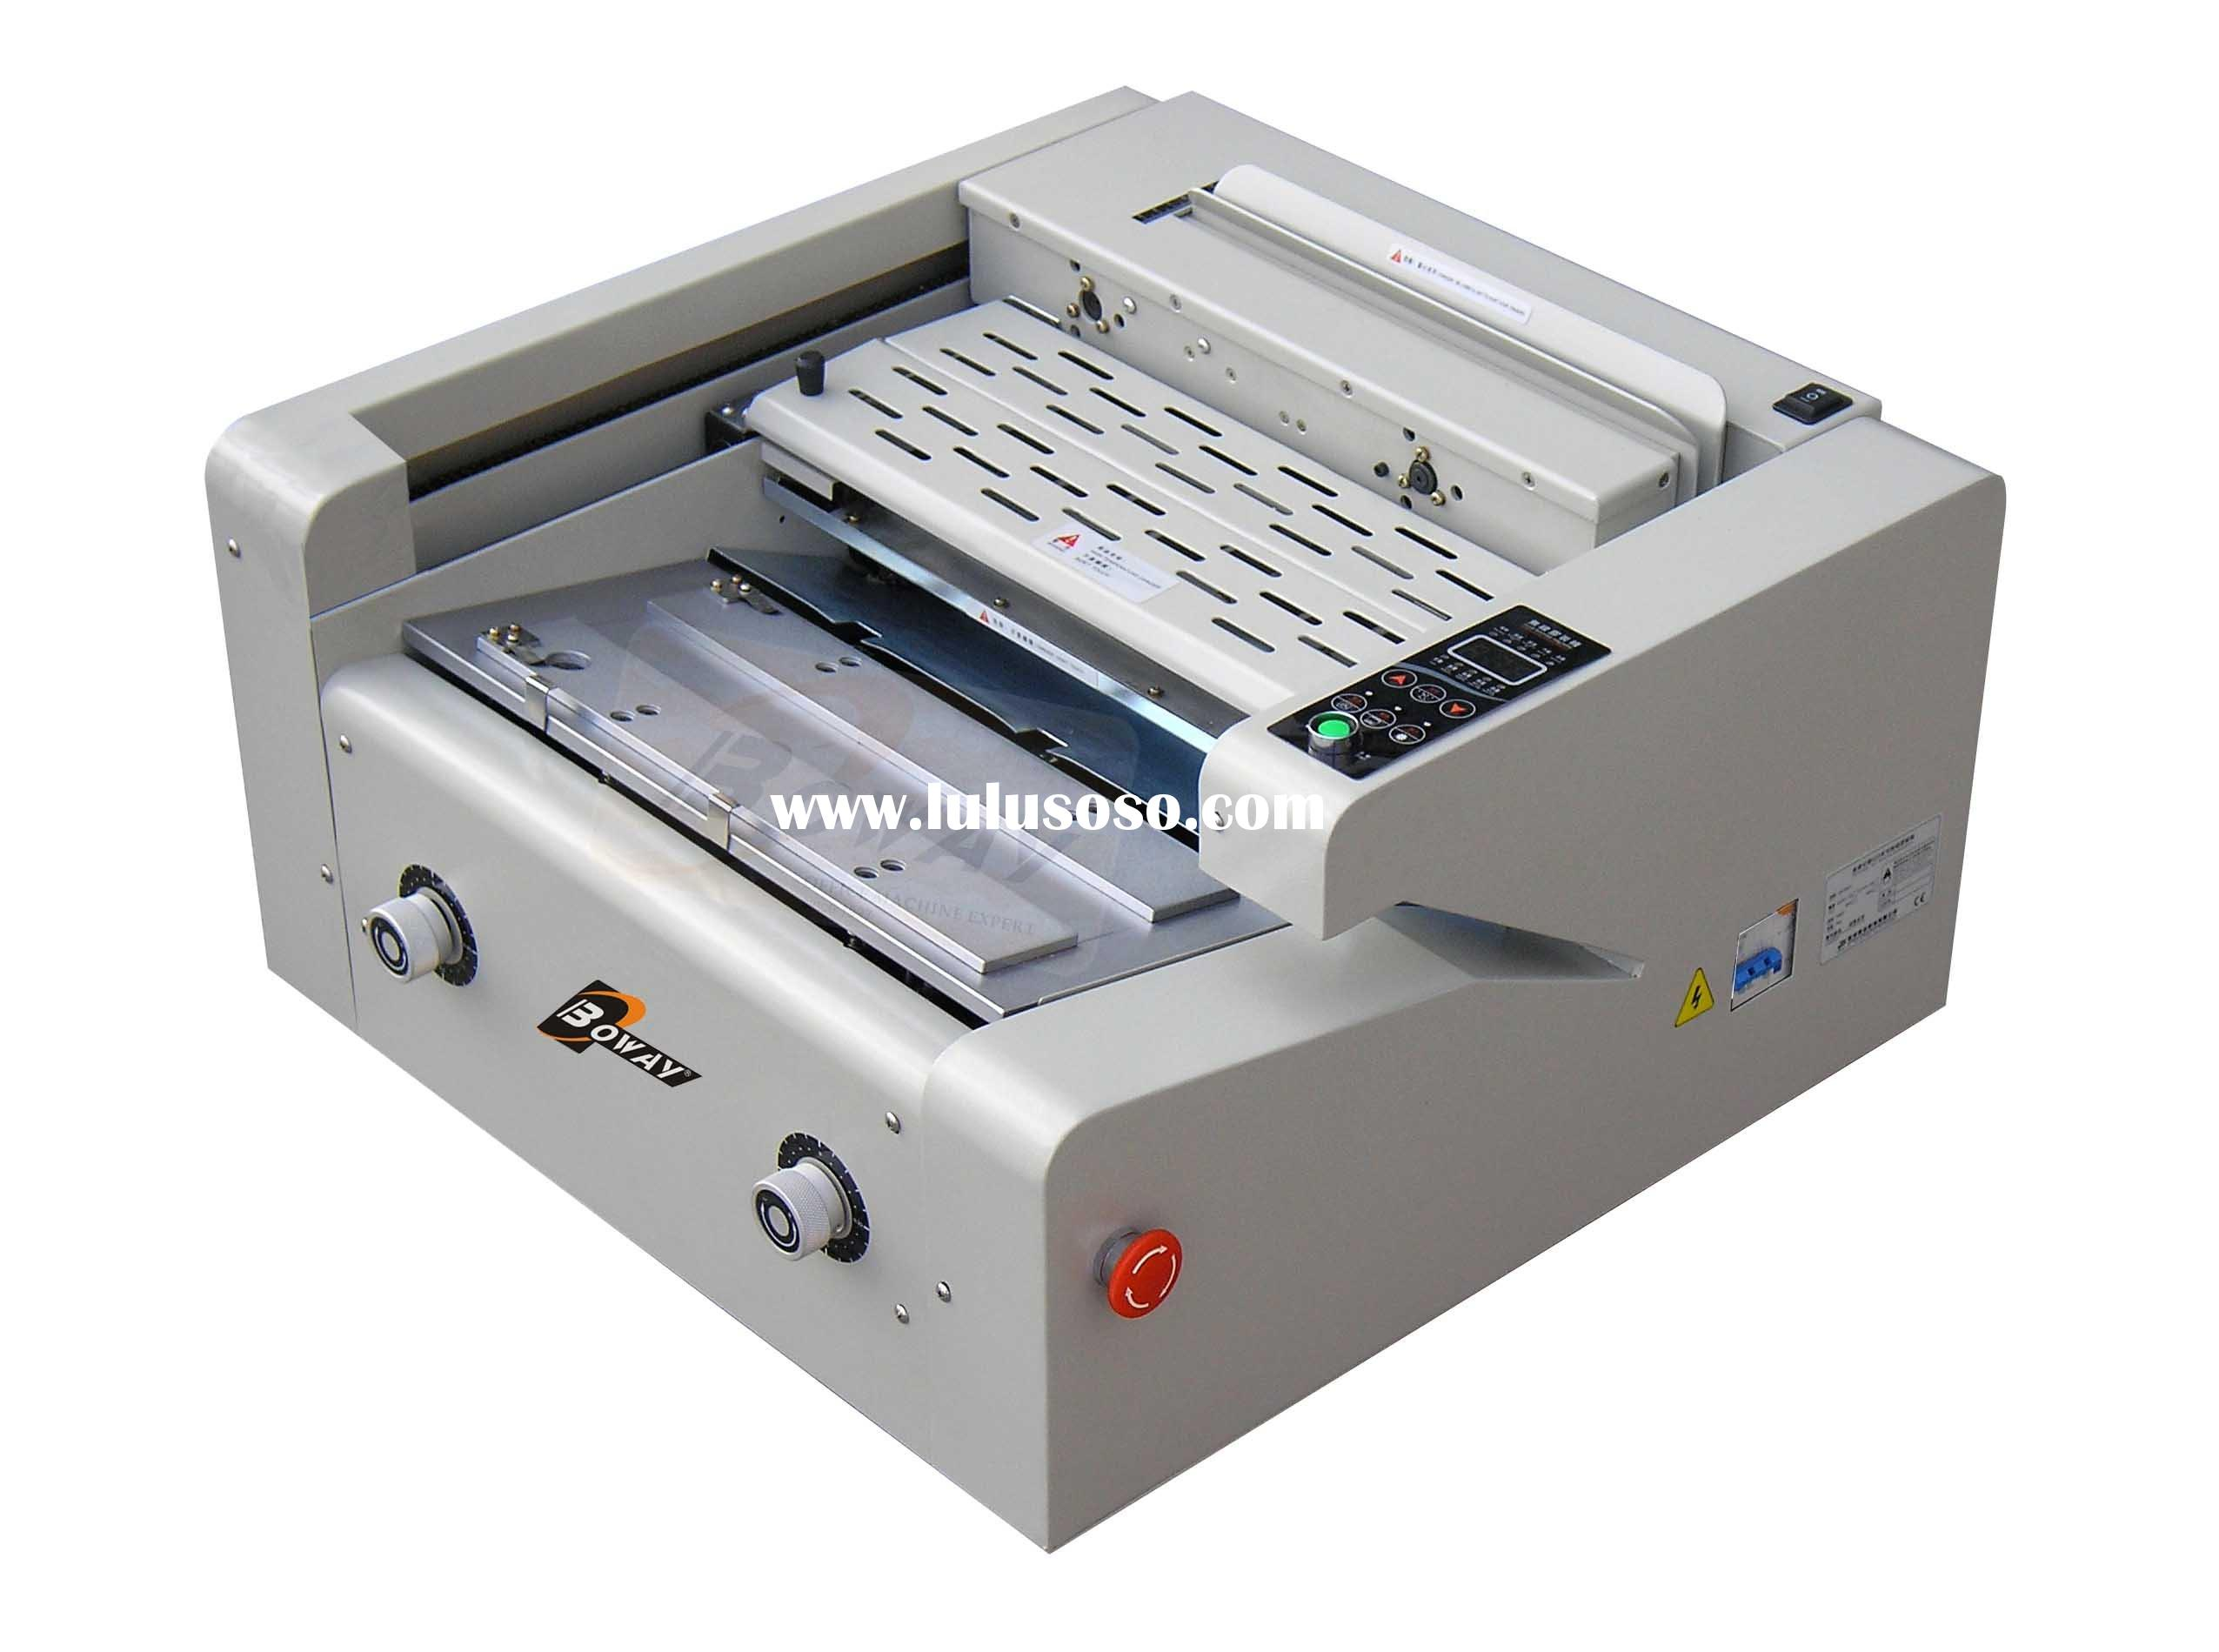 psu dissertation binding Buy paper psu thesis binding greenwich, college papers to buy college essay papers thesis statement tips buy paper psu thesis for organ donation speech.